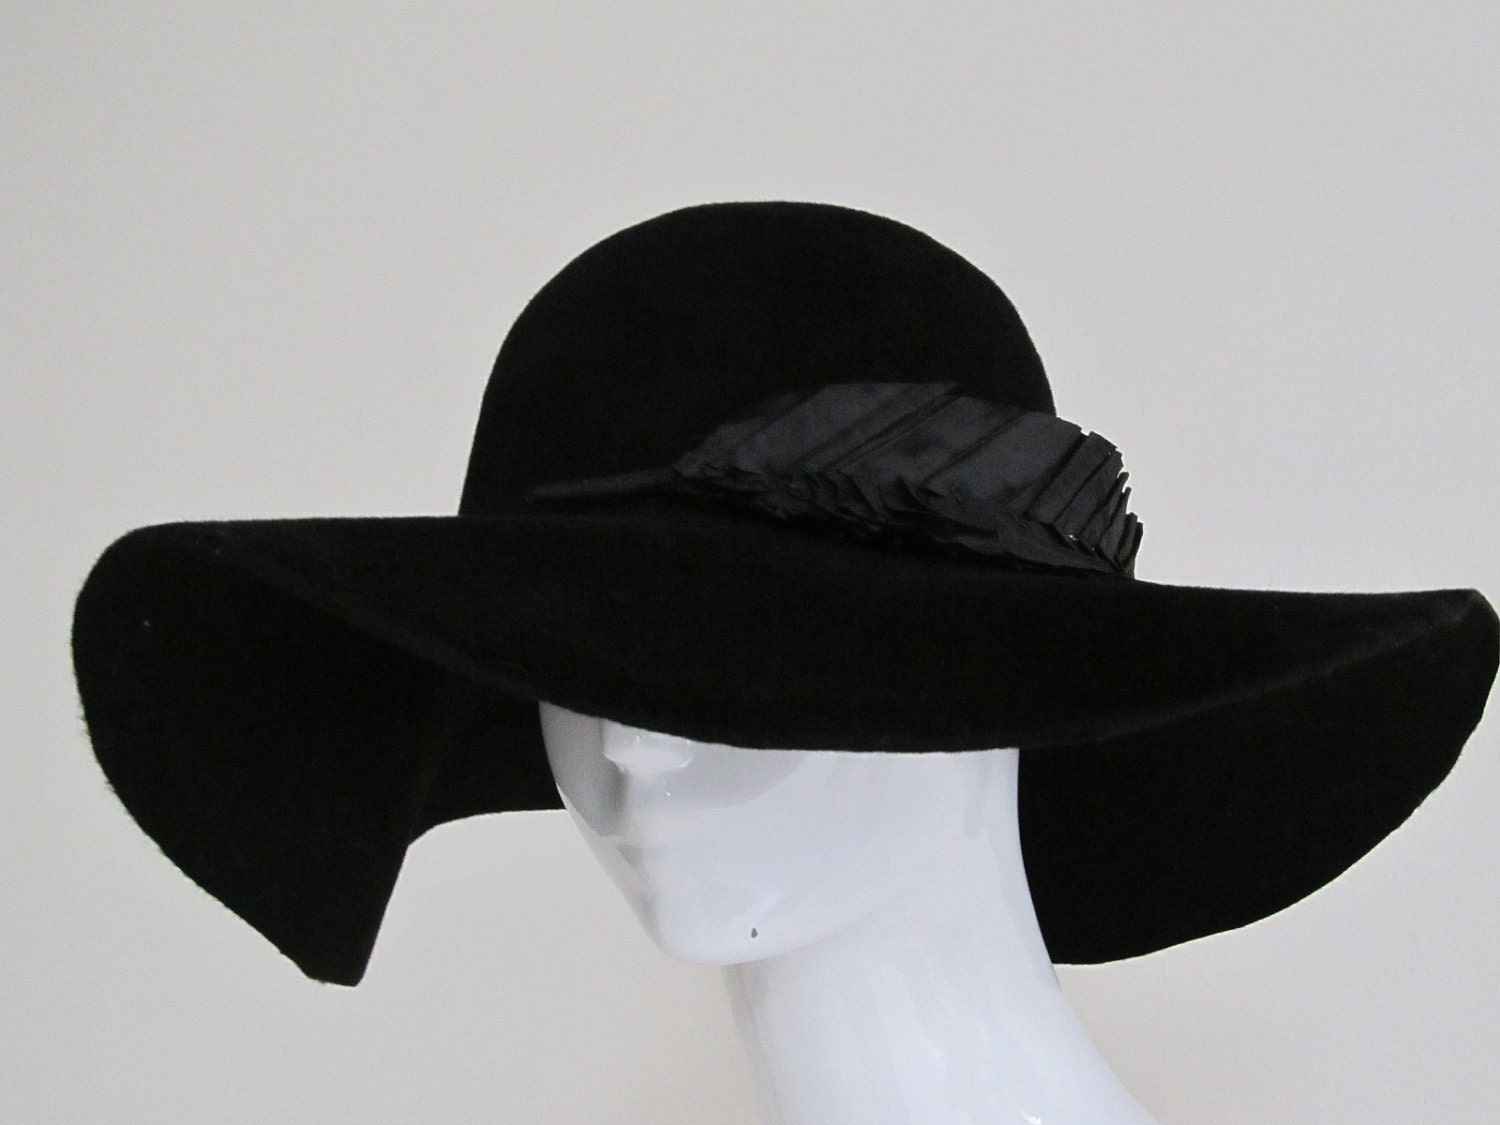 Find great deals on eBay for big black floppy hats. Shop with confidence.